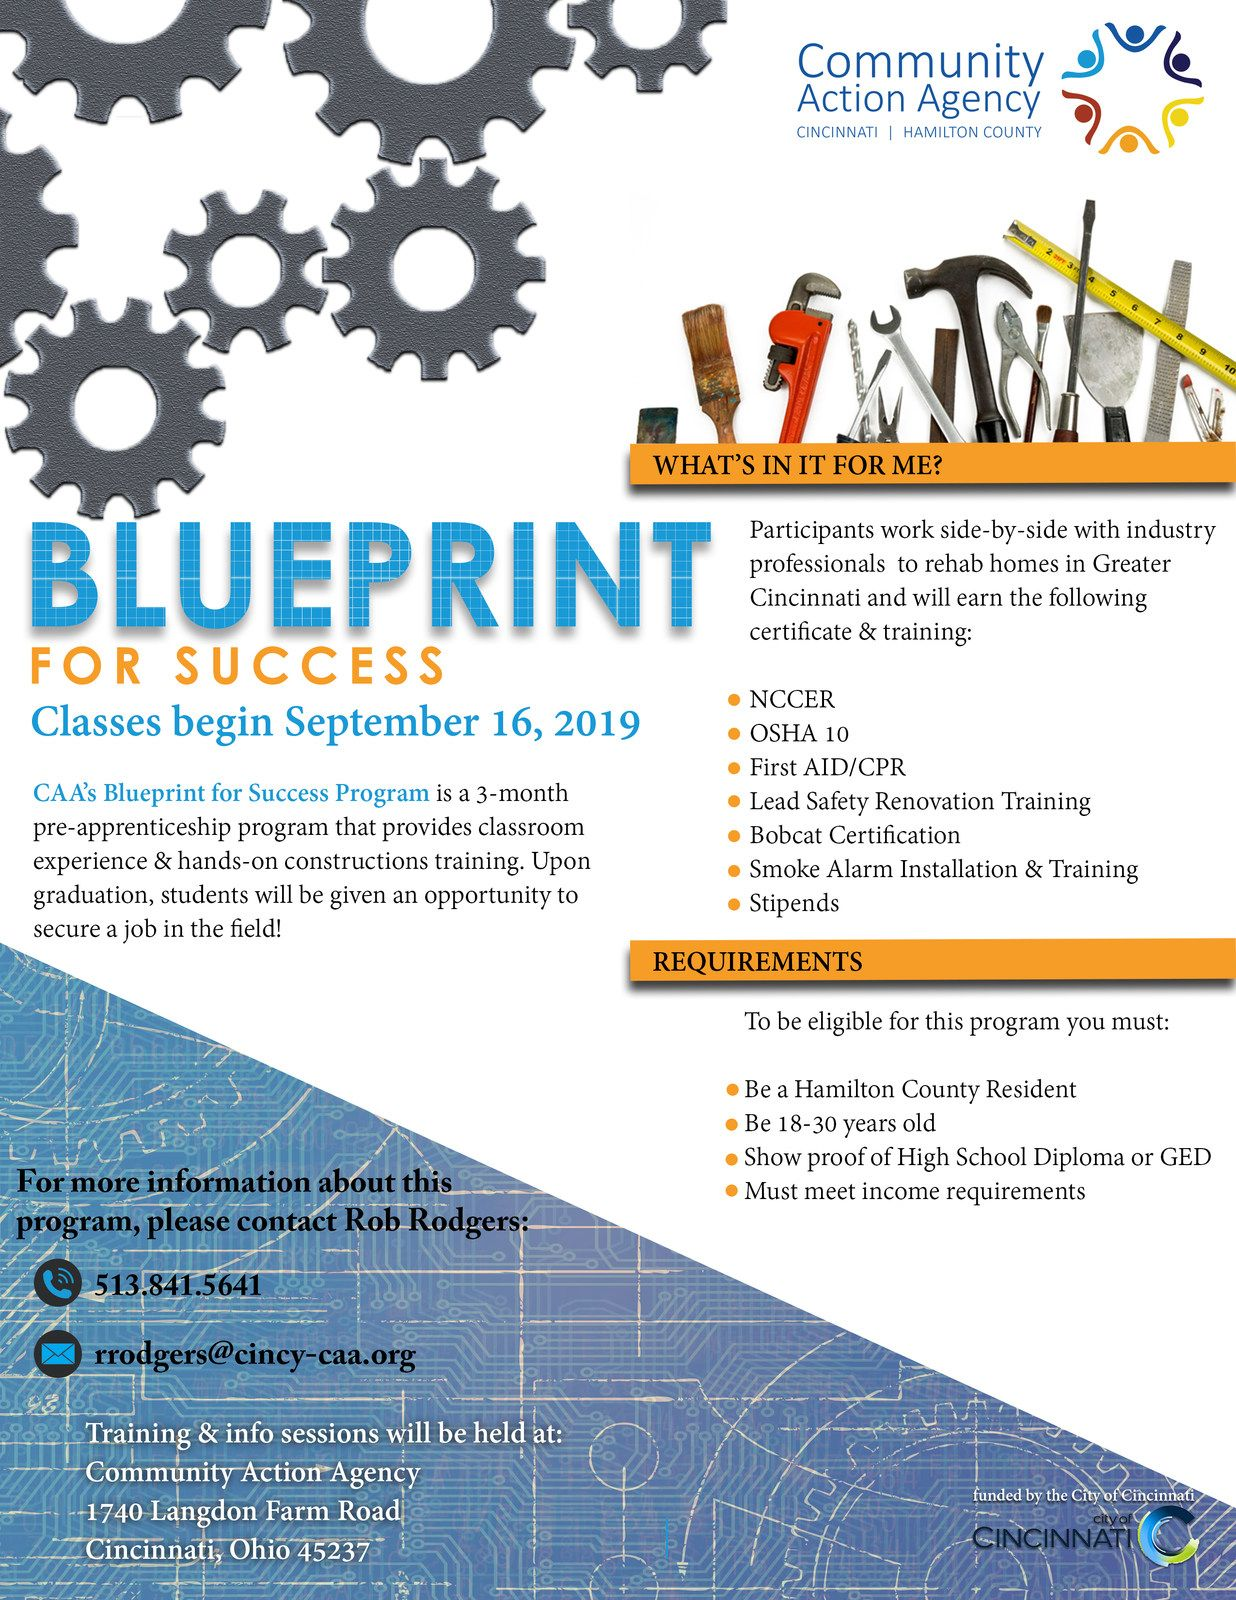 CAA's BluePrint for Success Construction Training Program - Classes Begin September 16, 2019